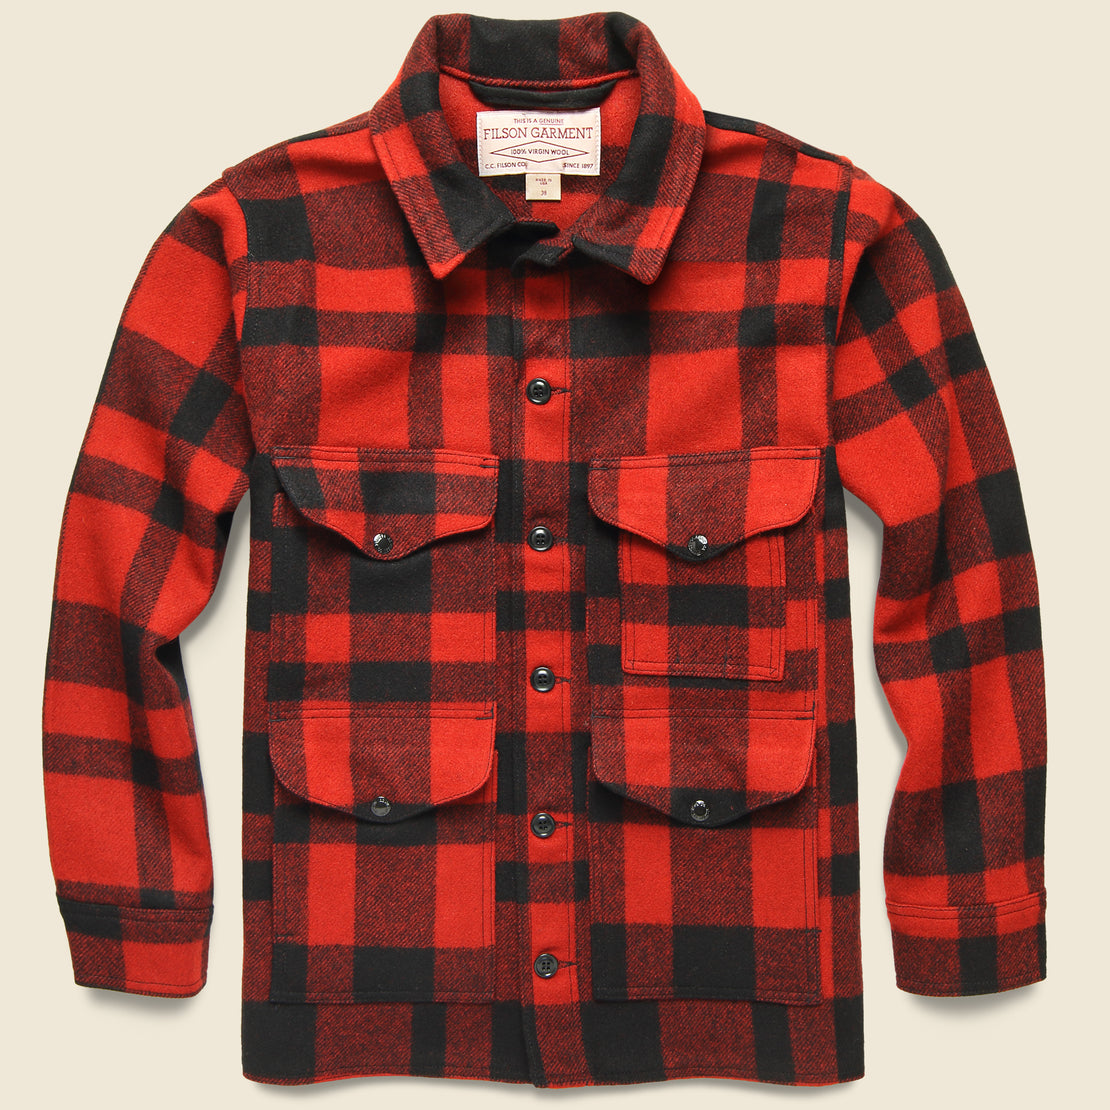 Filson Mackinaw Wool Cruiser Jacket - Red/Black